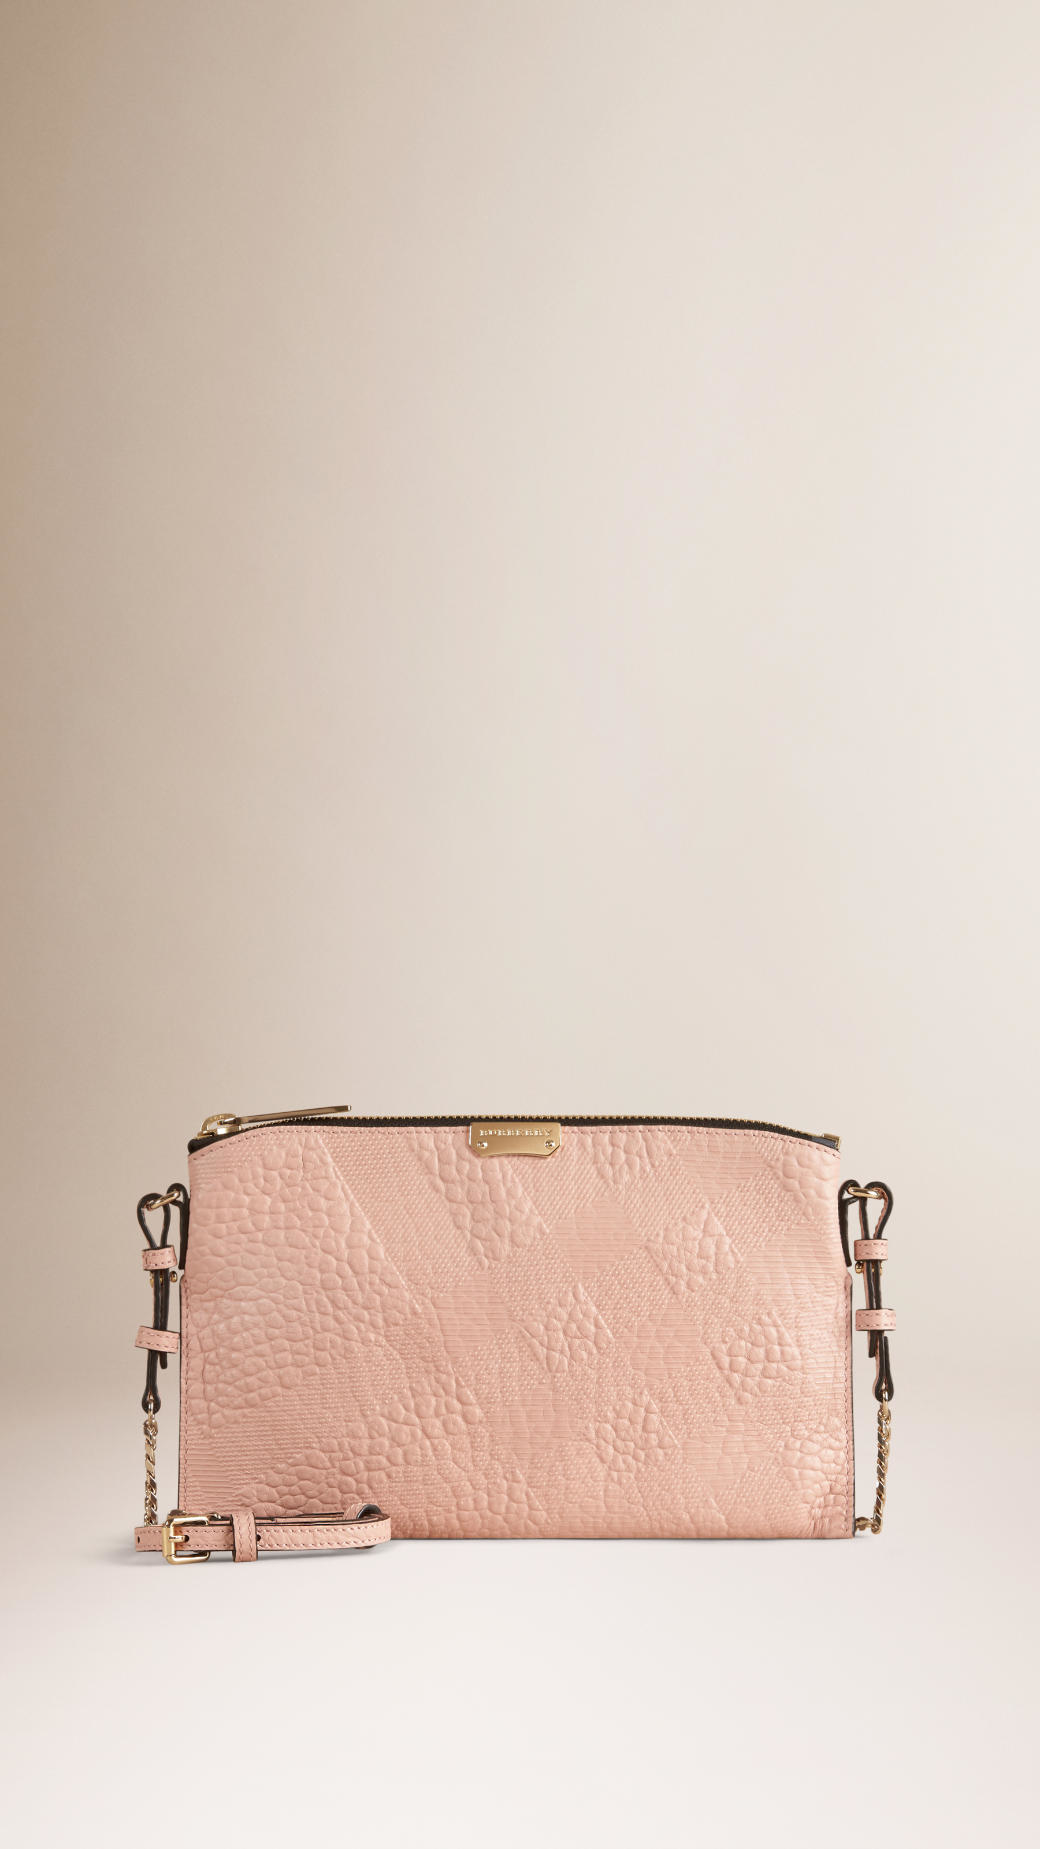 3a5b62f5afb8 Lyst - Burberry Check-embossed Leather Clutch Bag Pale Orchid in Pink